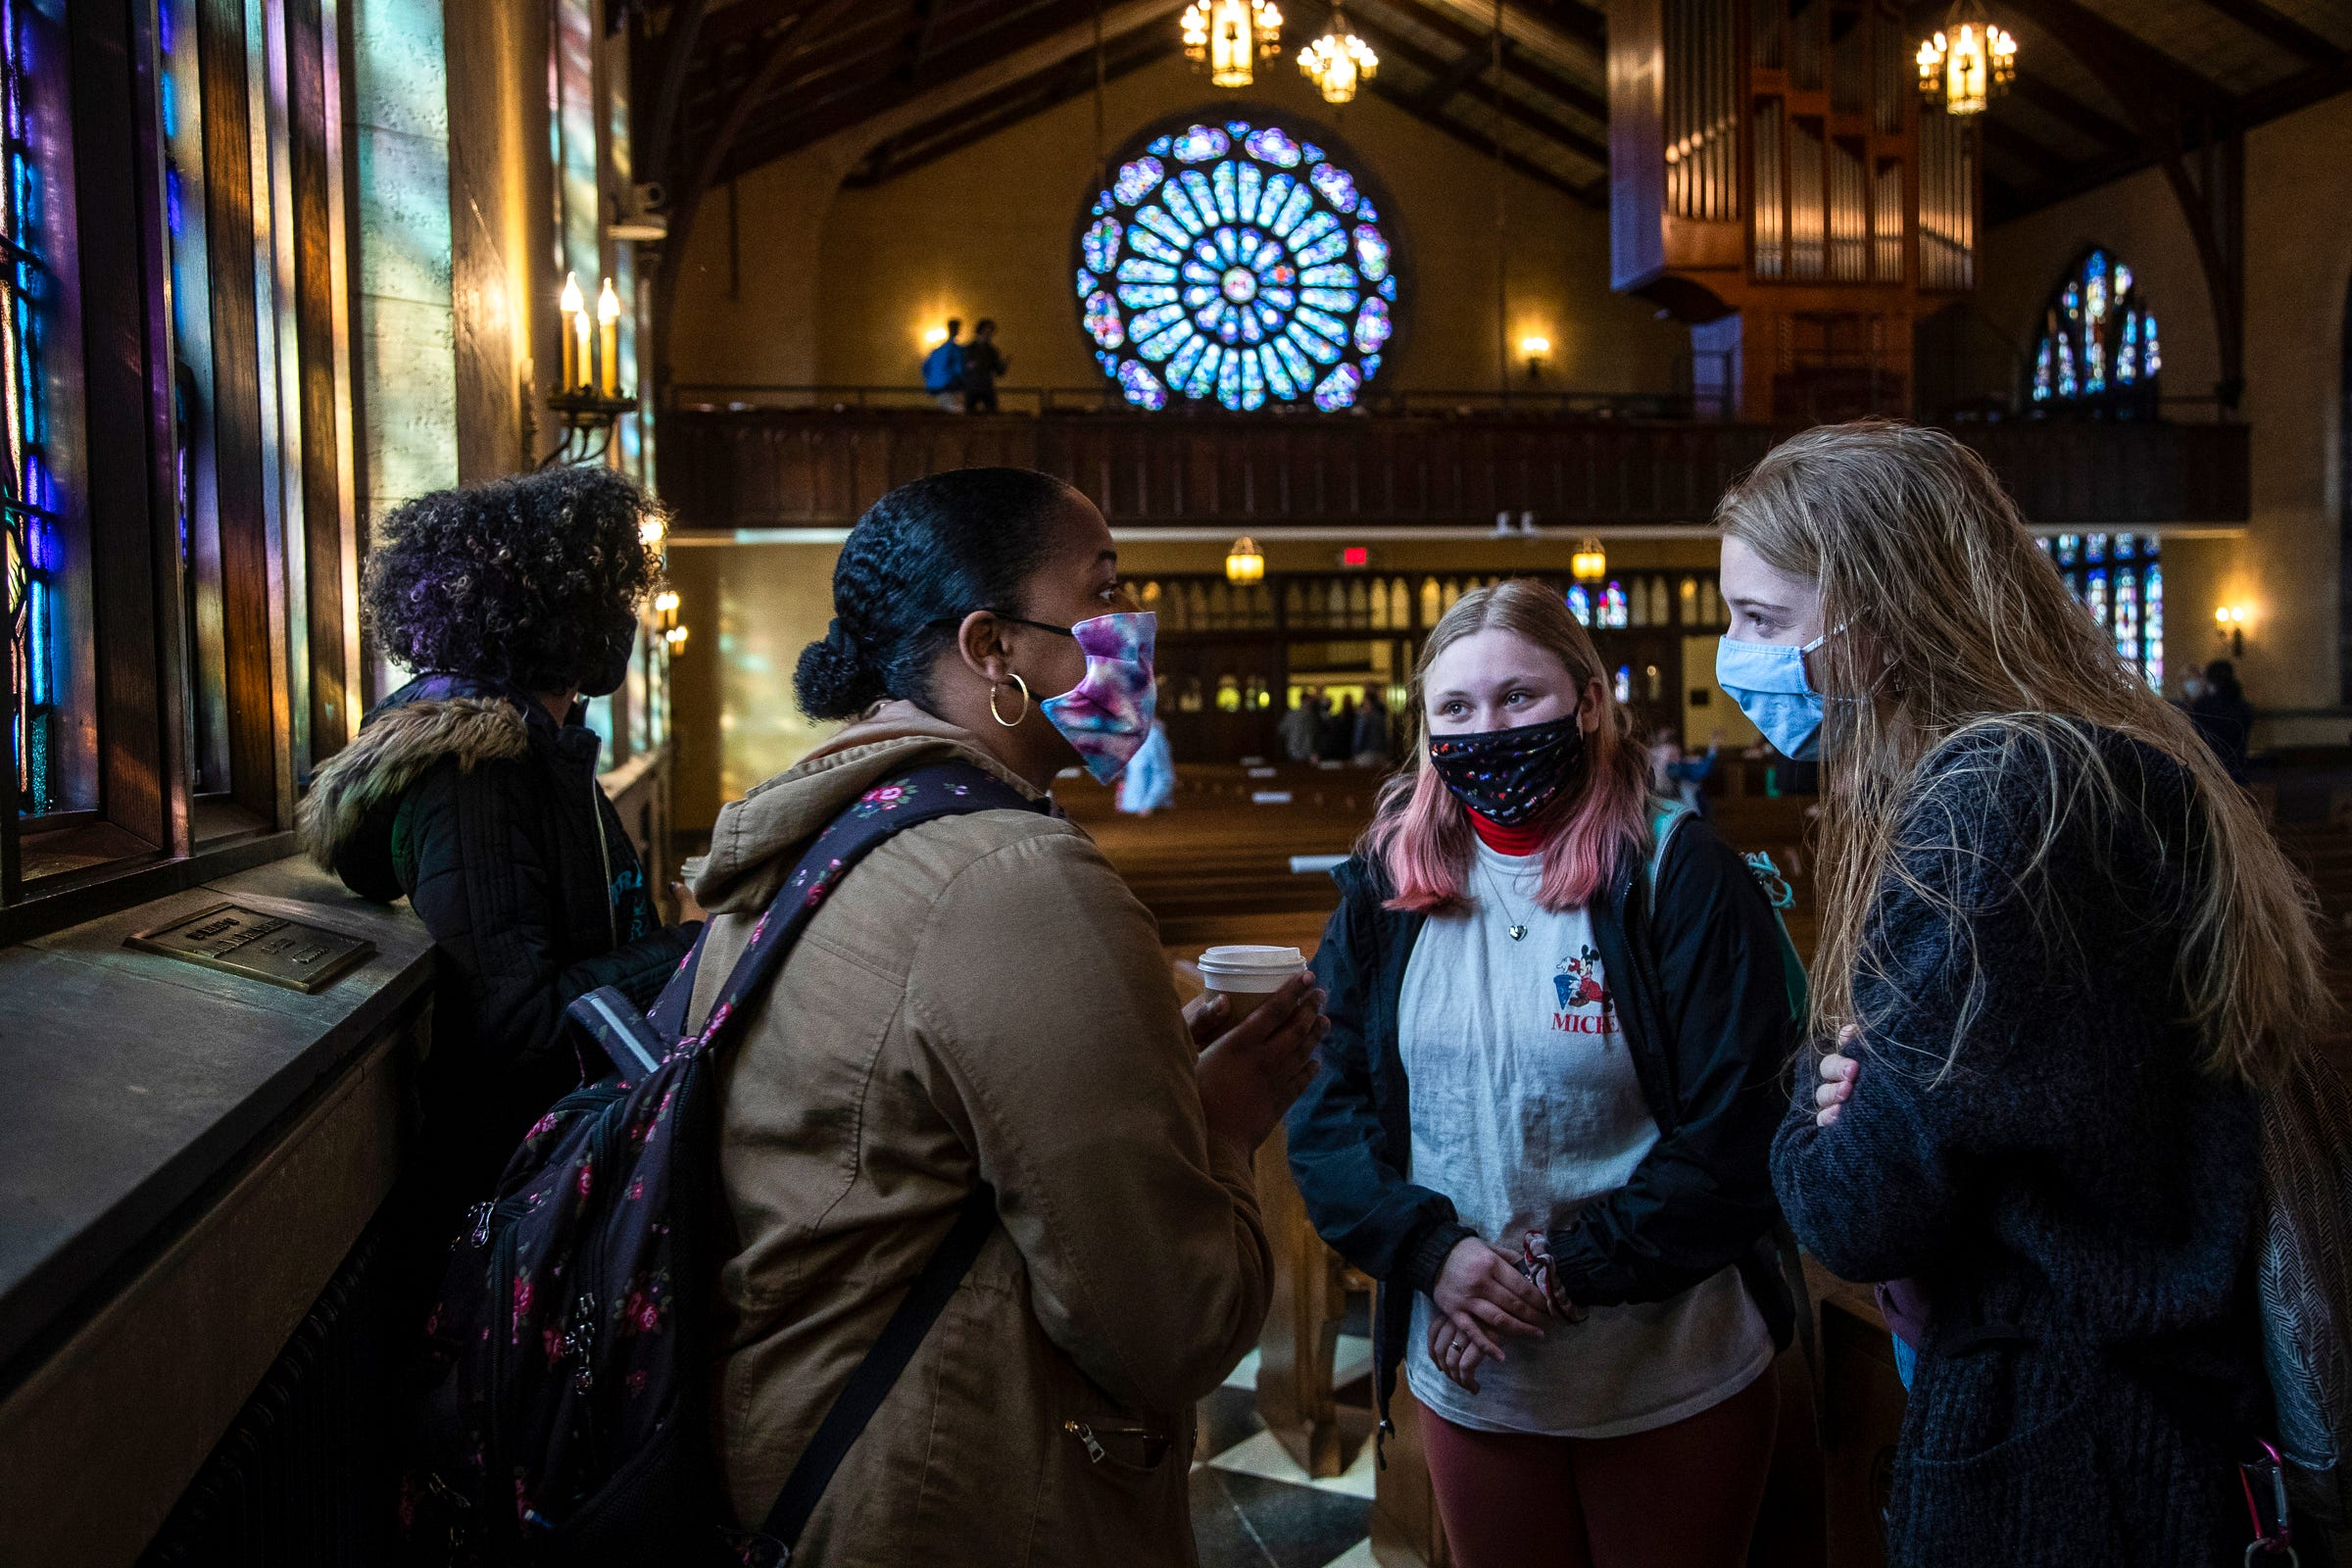 Hope College sophomore student Trinity Frye, center left, talks to Kate Kalthoff, center right, and Brianna Tomczak, both freshmen, after the 10:30 a.m. worship service at the Dimnent Memorial Chapel on Hope College campus in Holland, Wednesday, March 31, 2021.